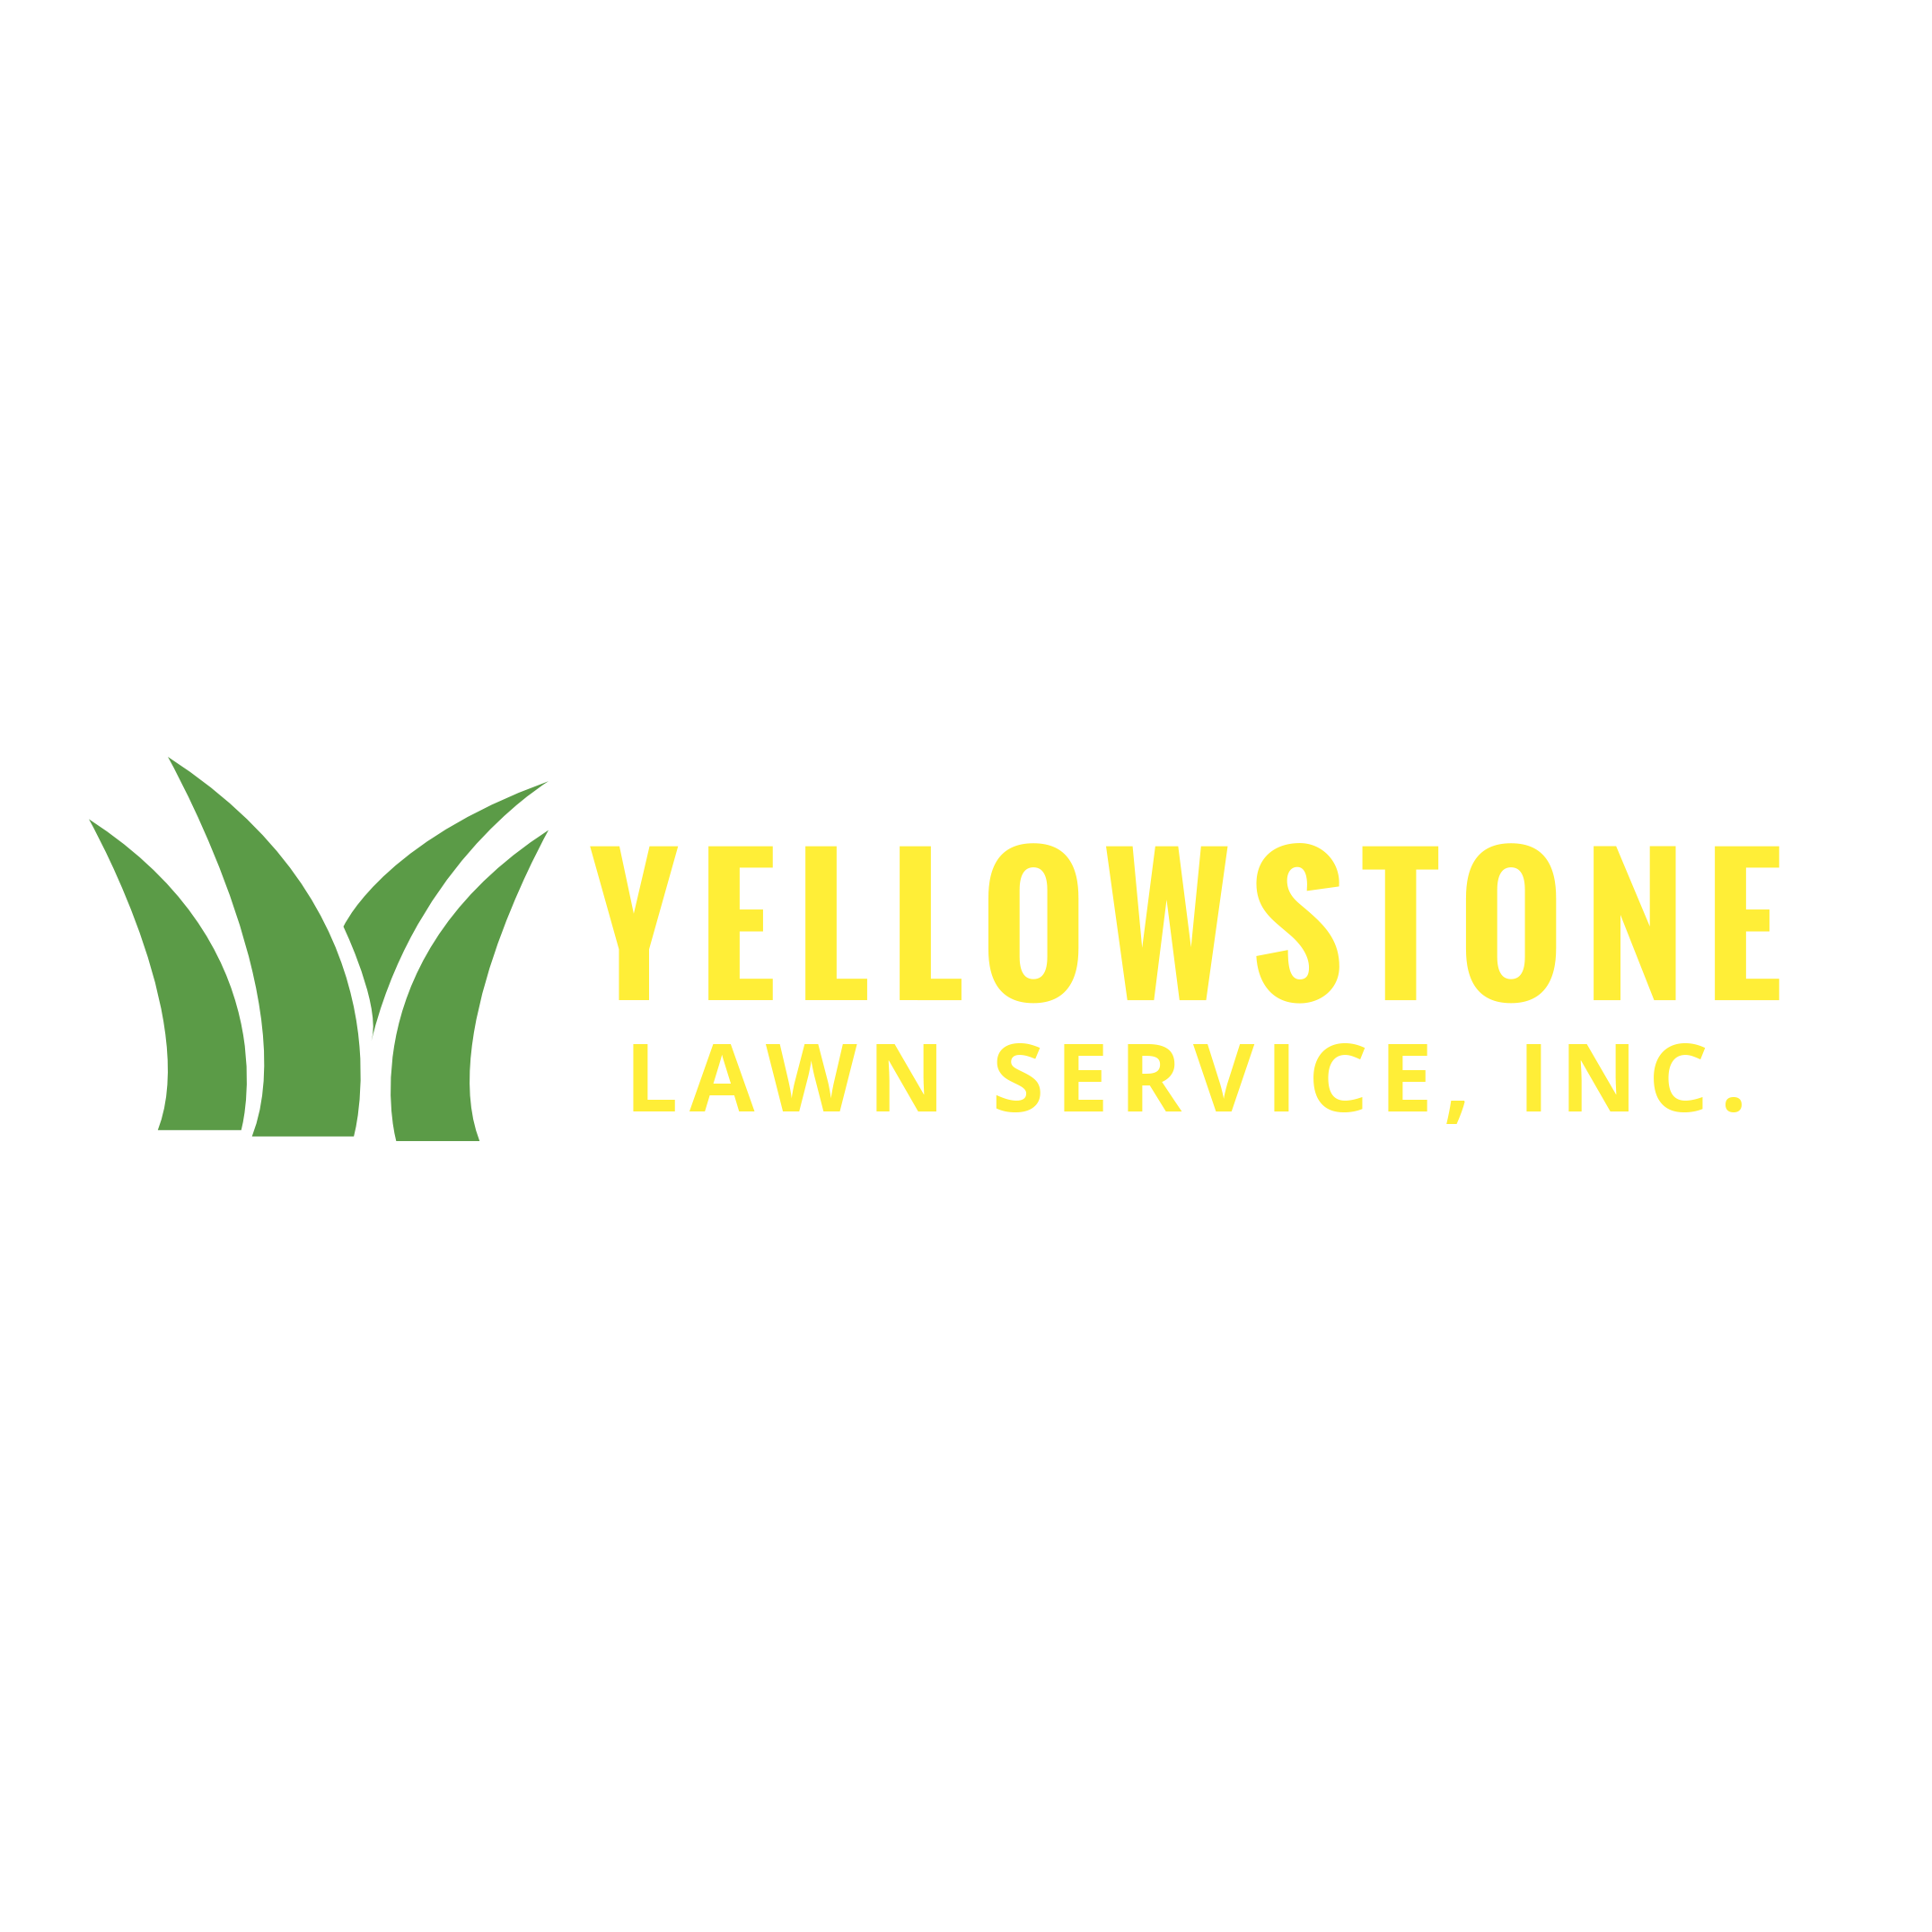 Yellowstone lawn service inc billings montana for Local lawn care services